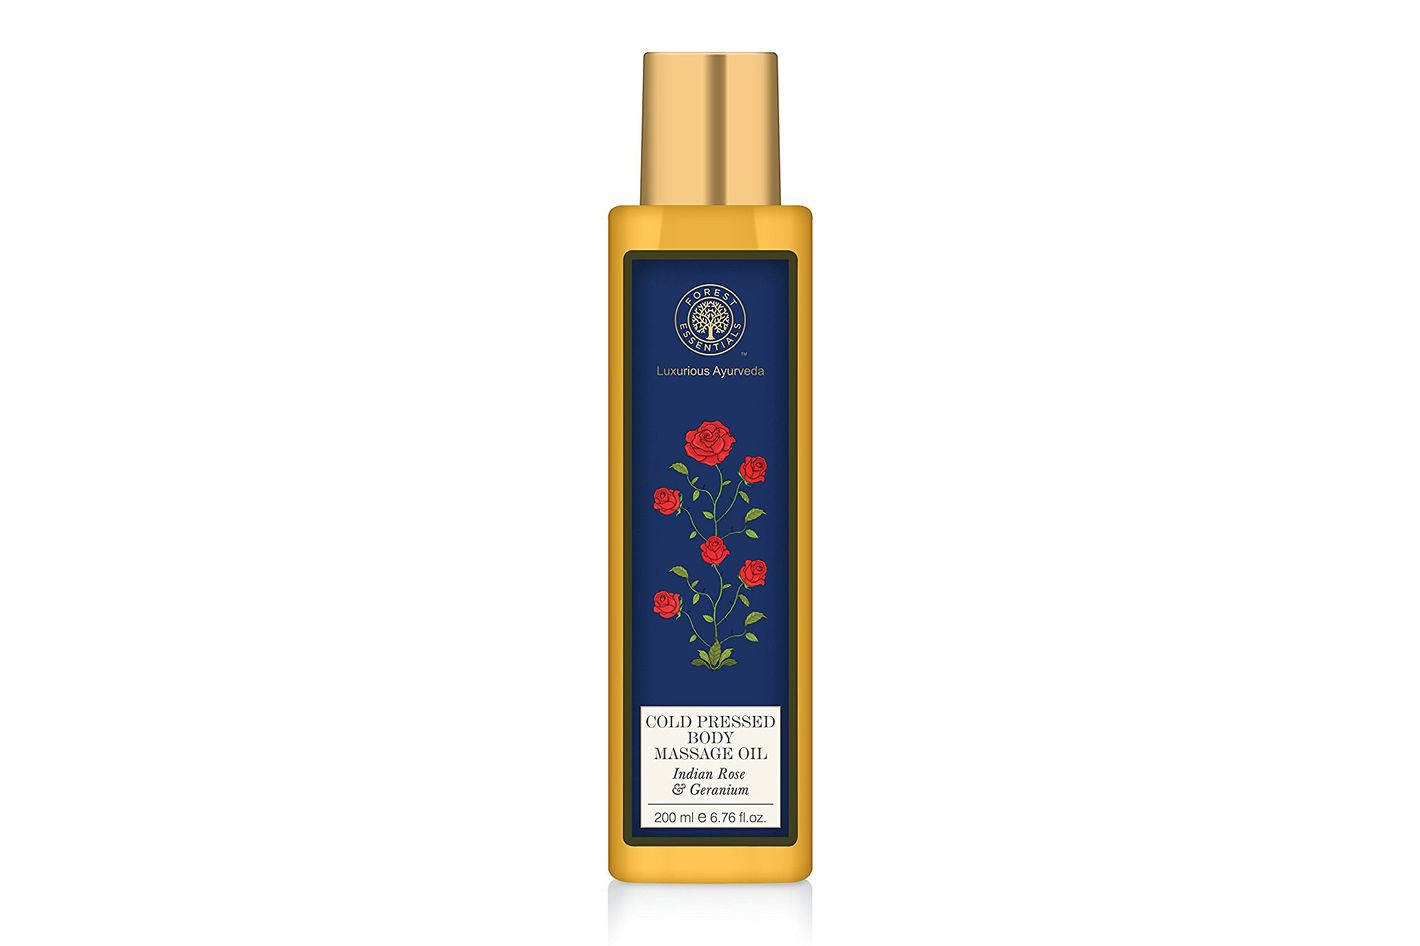 Forest Essentials Cold-Pressed Body Massage Oil Indian Rose & Geranium